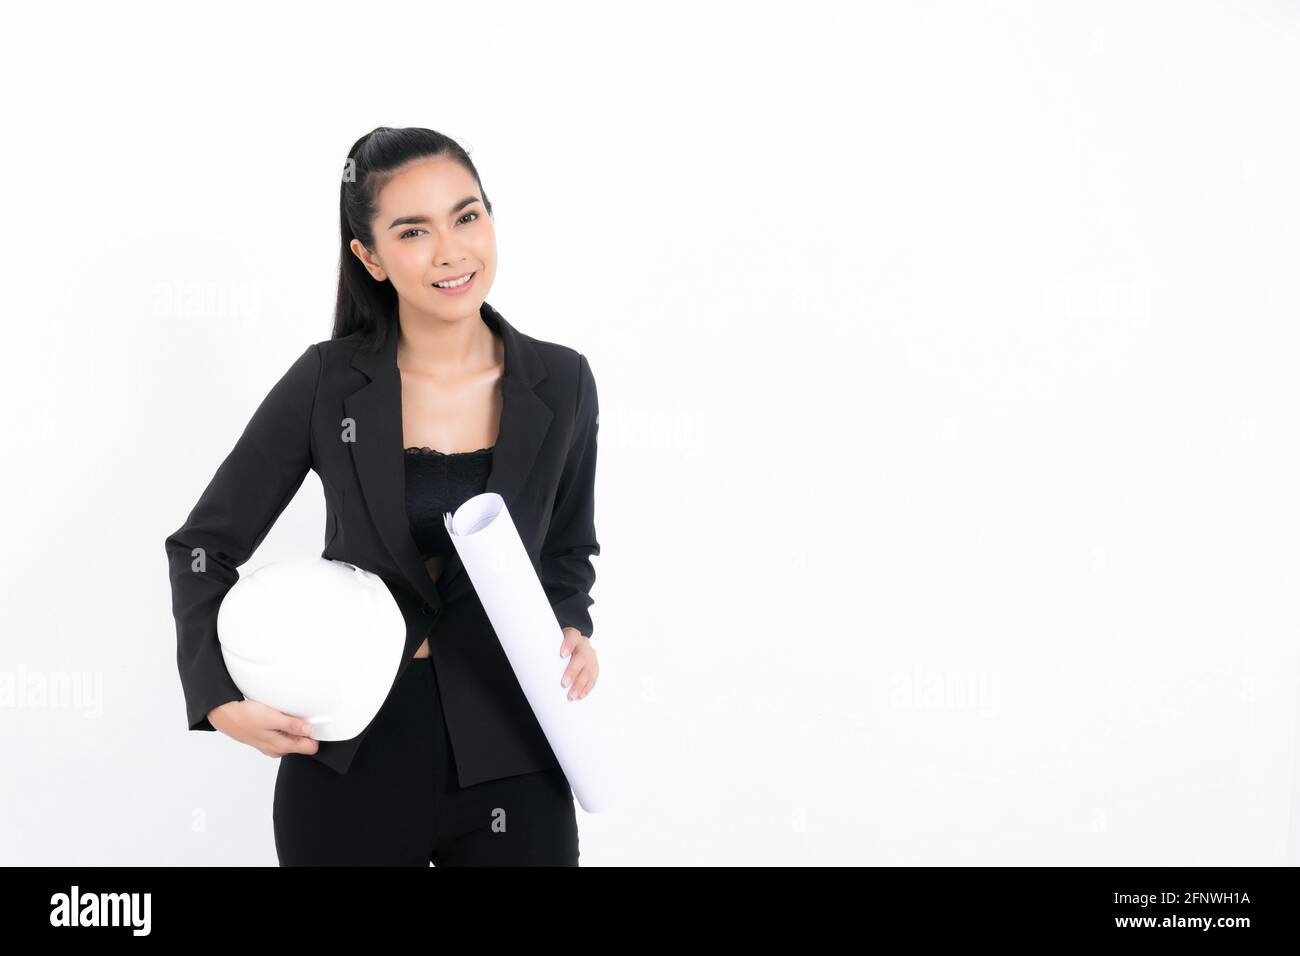 Portrait young engineer woman wearing black suit holding blueprint and white safety-helmet in shot studio isolated on white background. Stock Photo